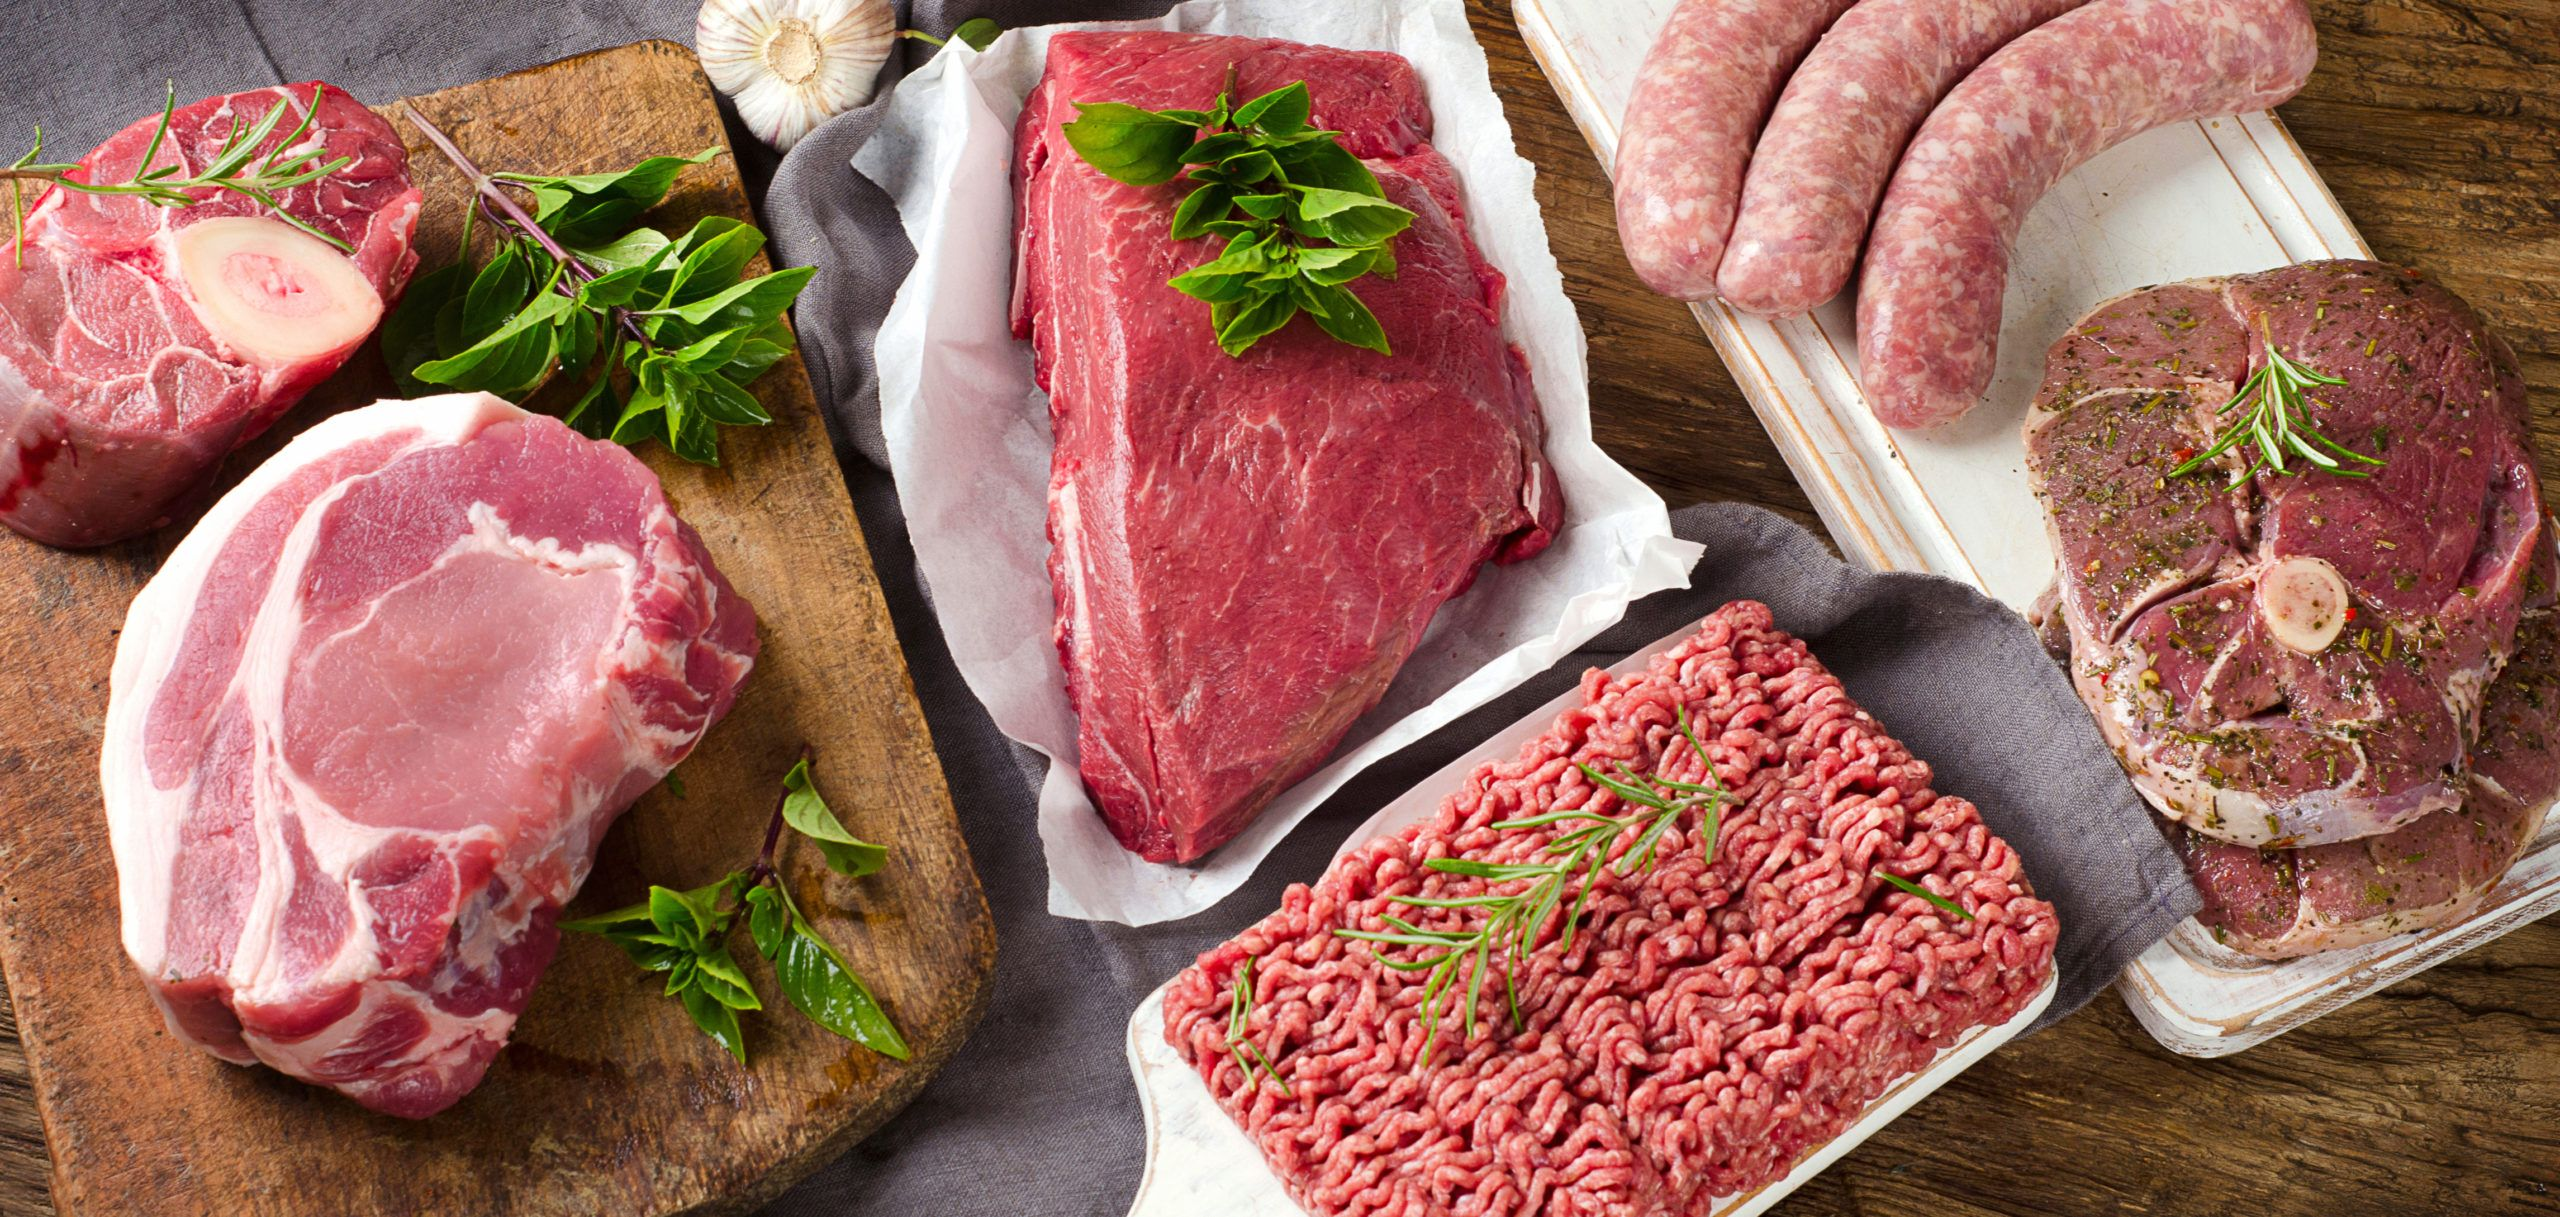 The current situation on the pork and beef market in the European Union for early 2020